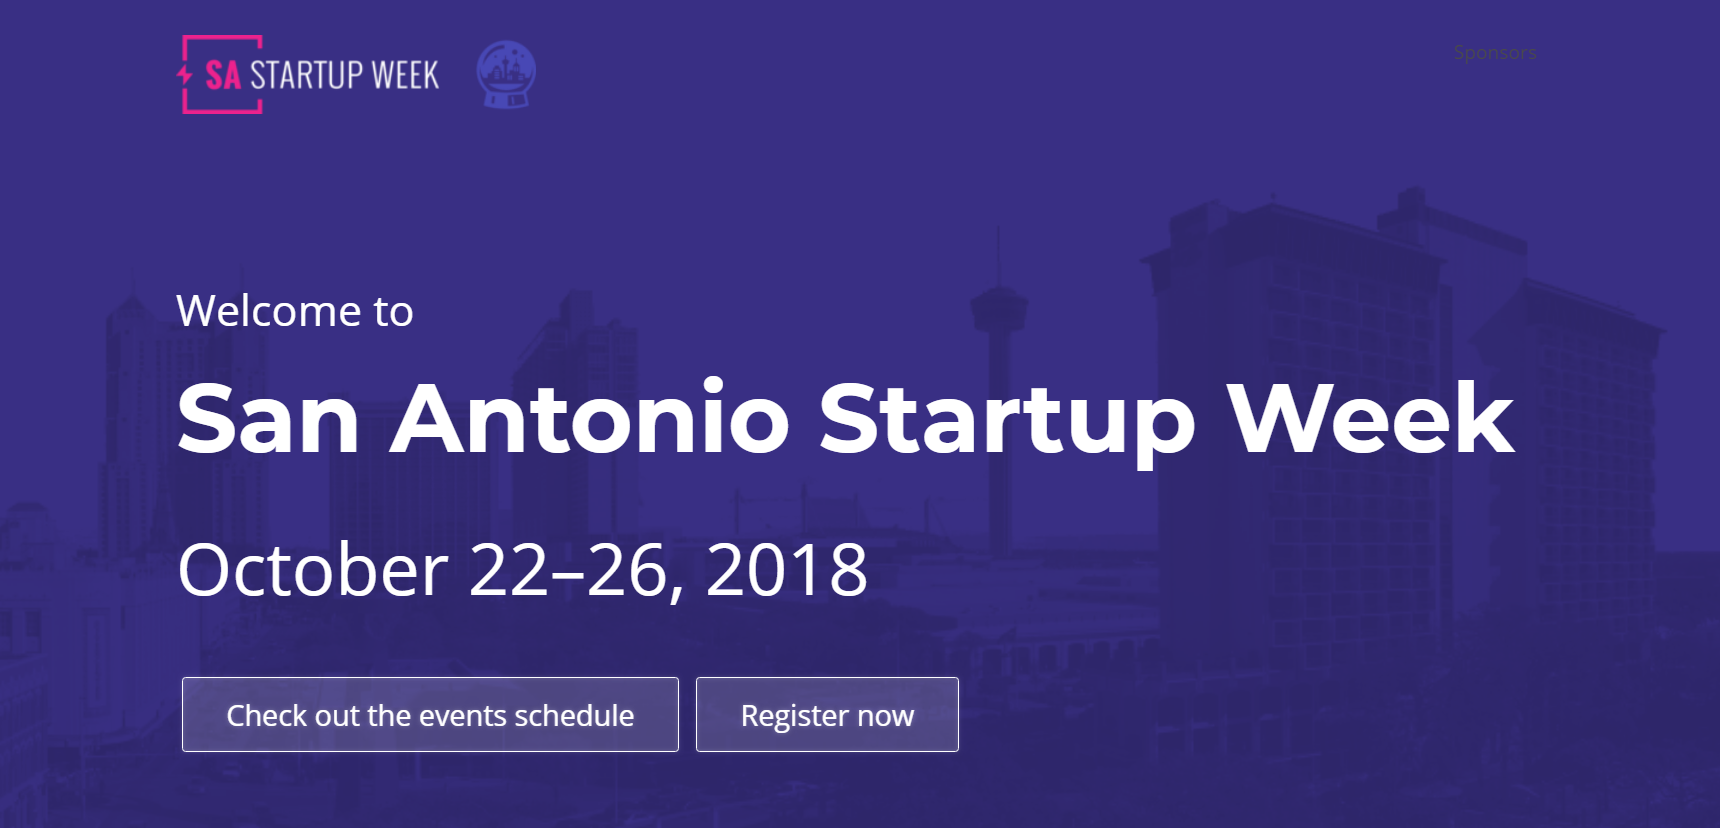 San Antonio Startup Events for the Week of October 22, 2018